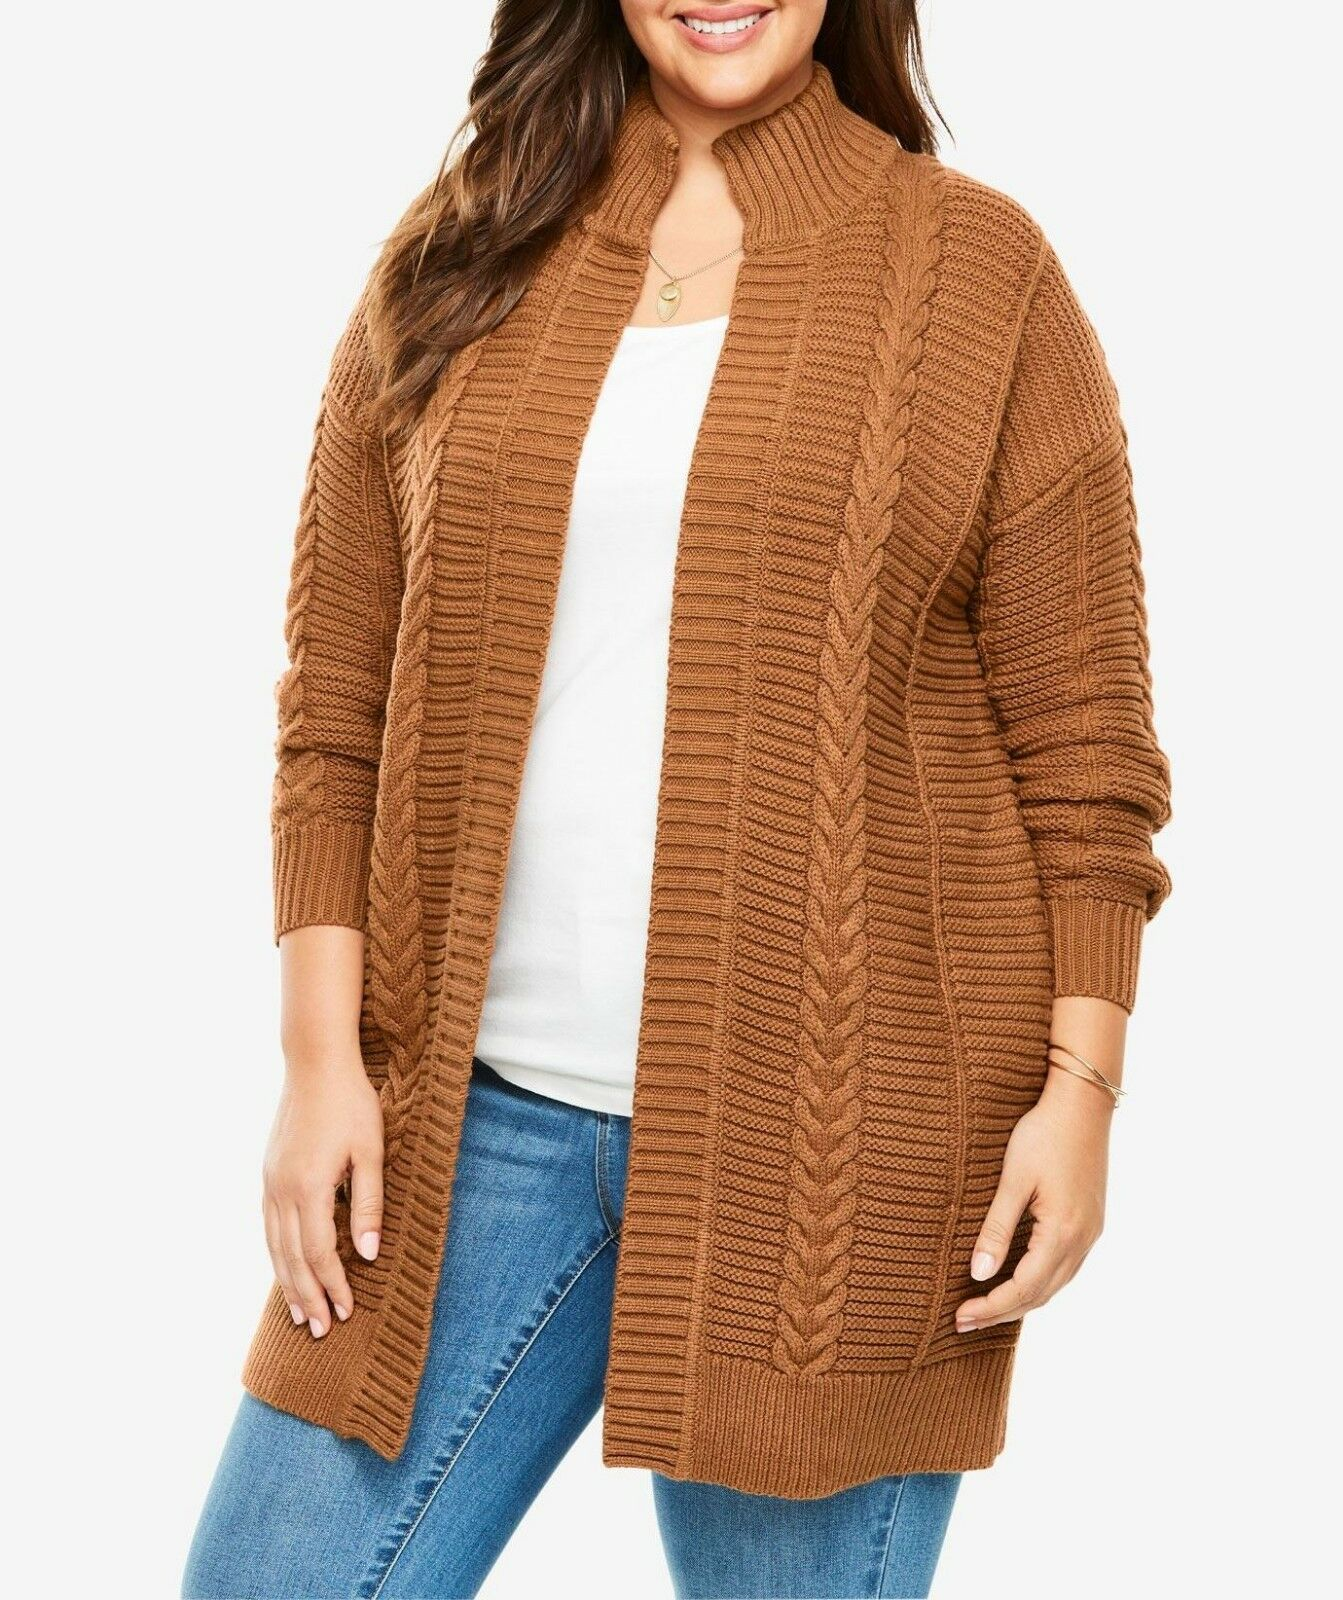 Woman Within Plus Size Ginger Knit Sweater Cardigan Size 4X(34 36)